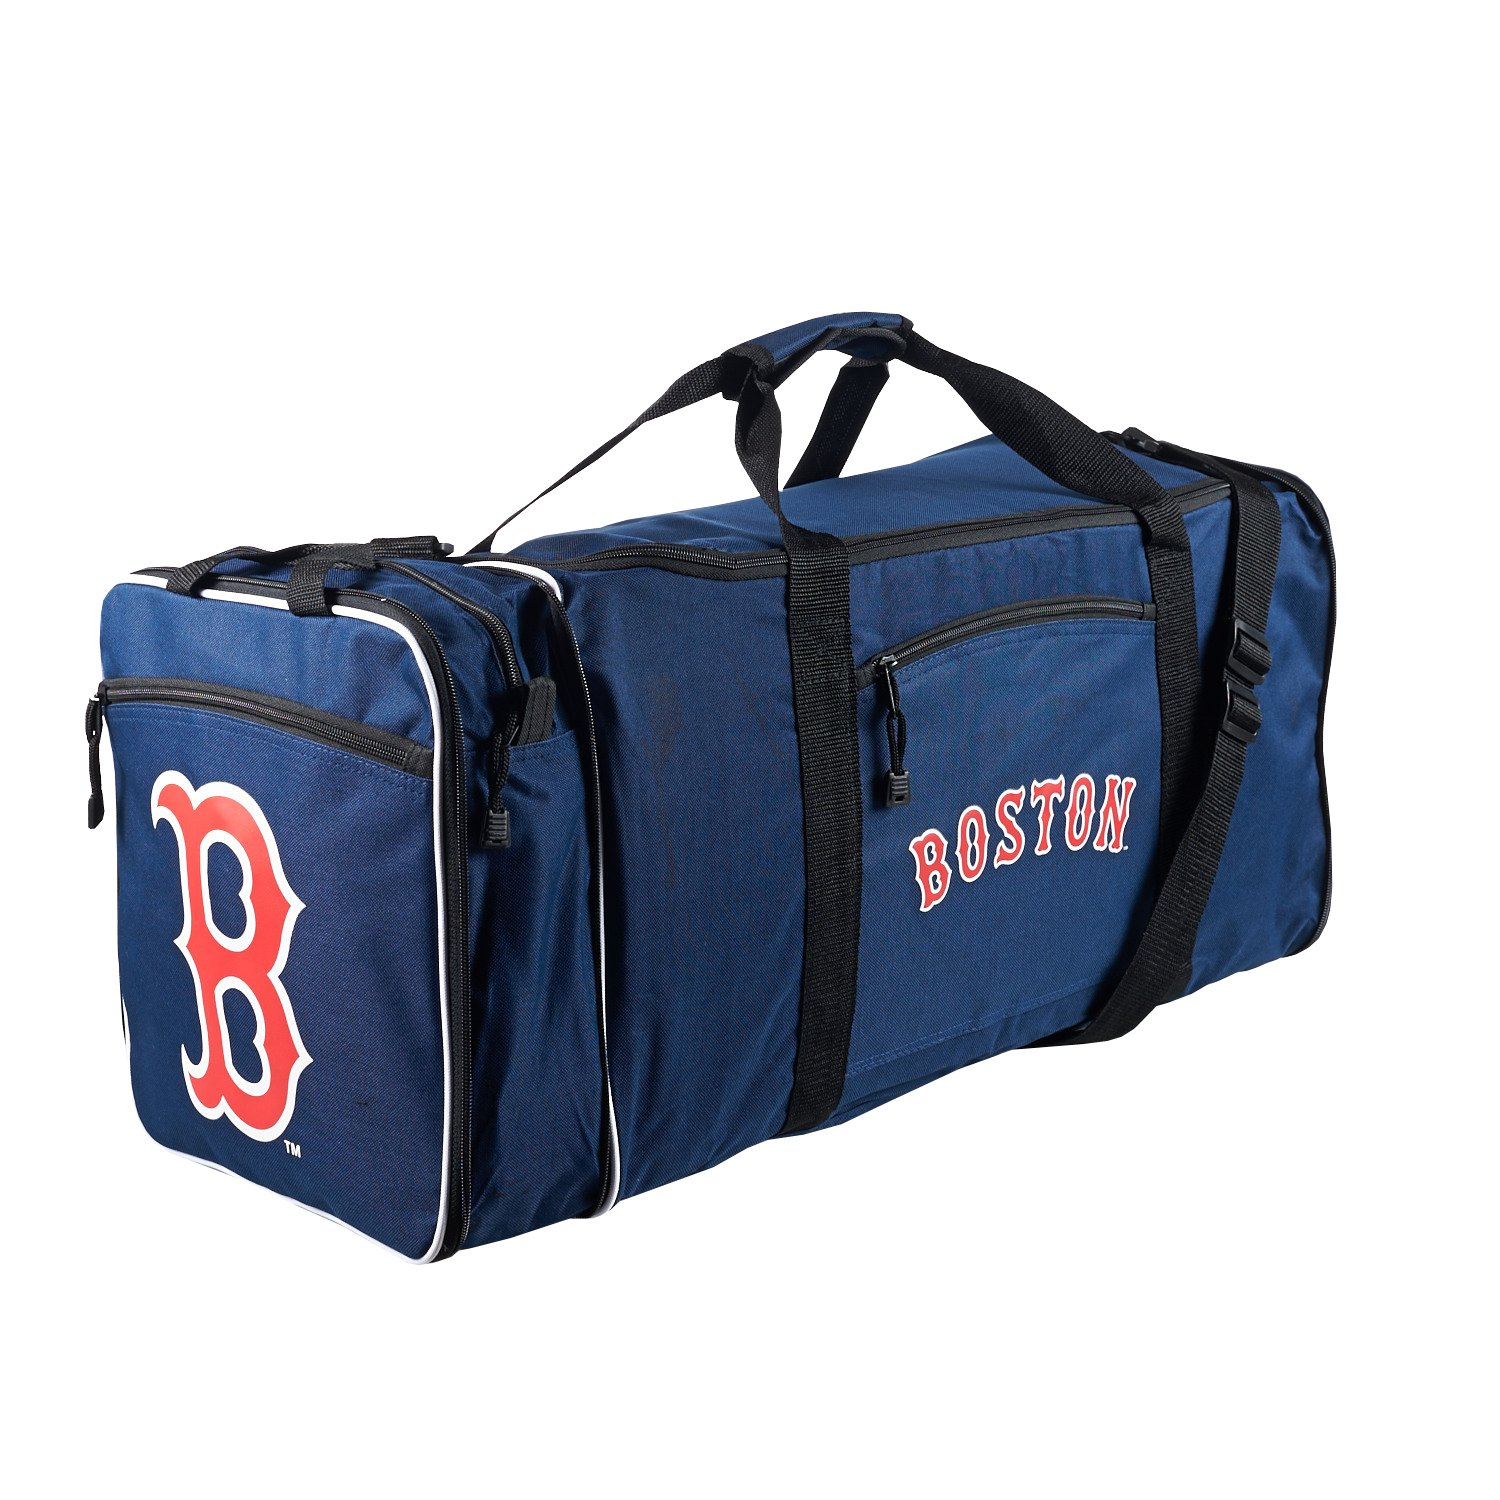 Concept One Accessories Officially Licensed MLB Boston Red Sox Steal Duffel bag, 28'' x 11'' x 12''